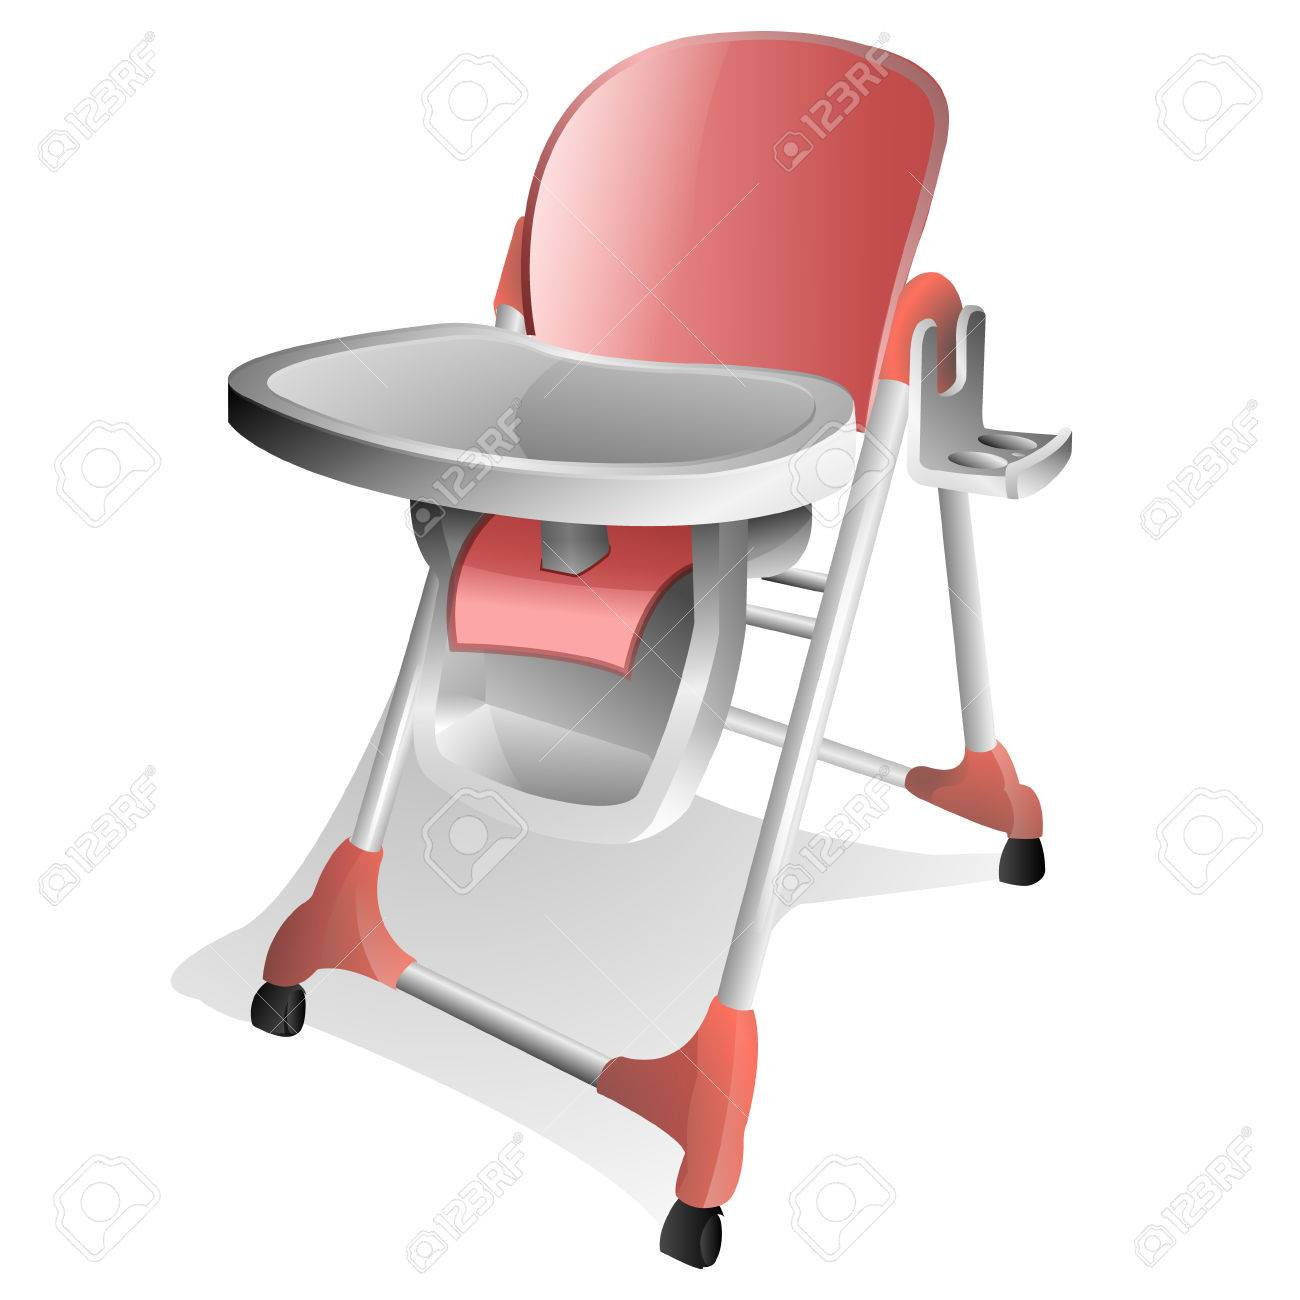 Pink and White Baby High Chair with Tray.